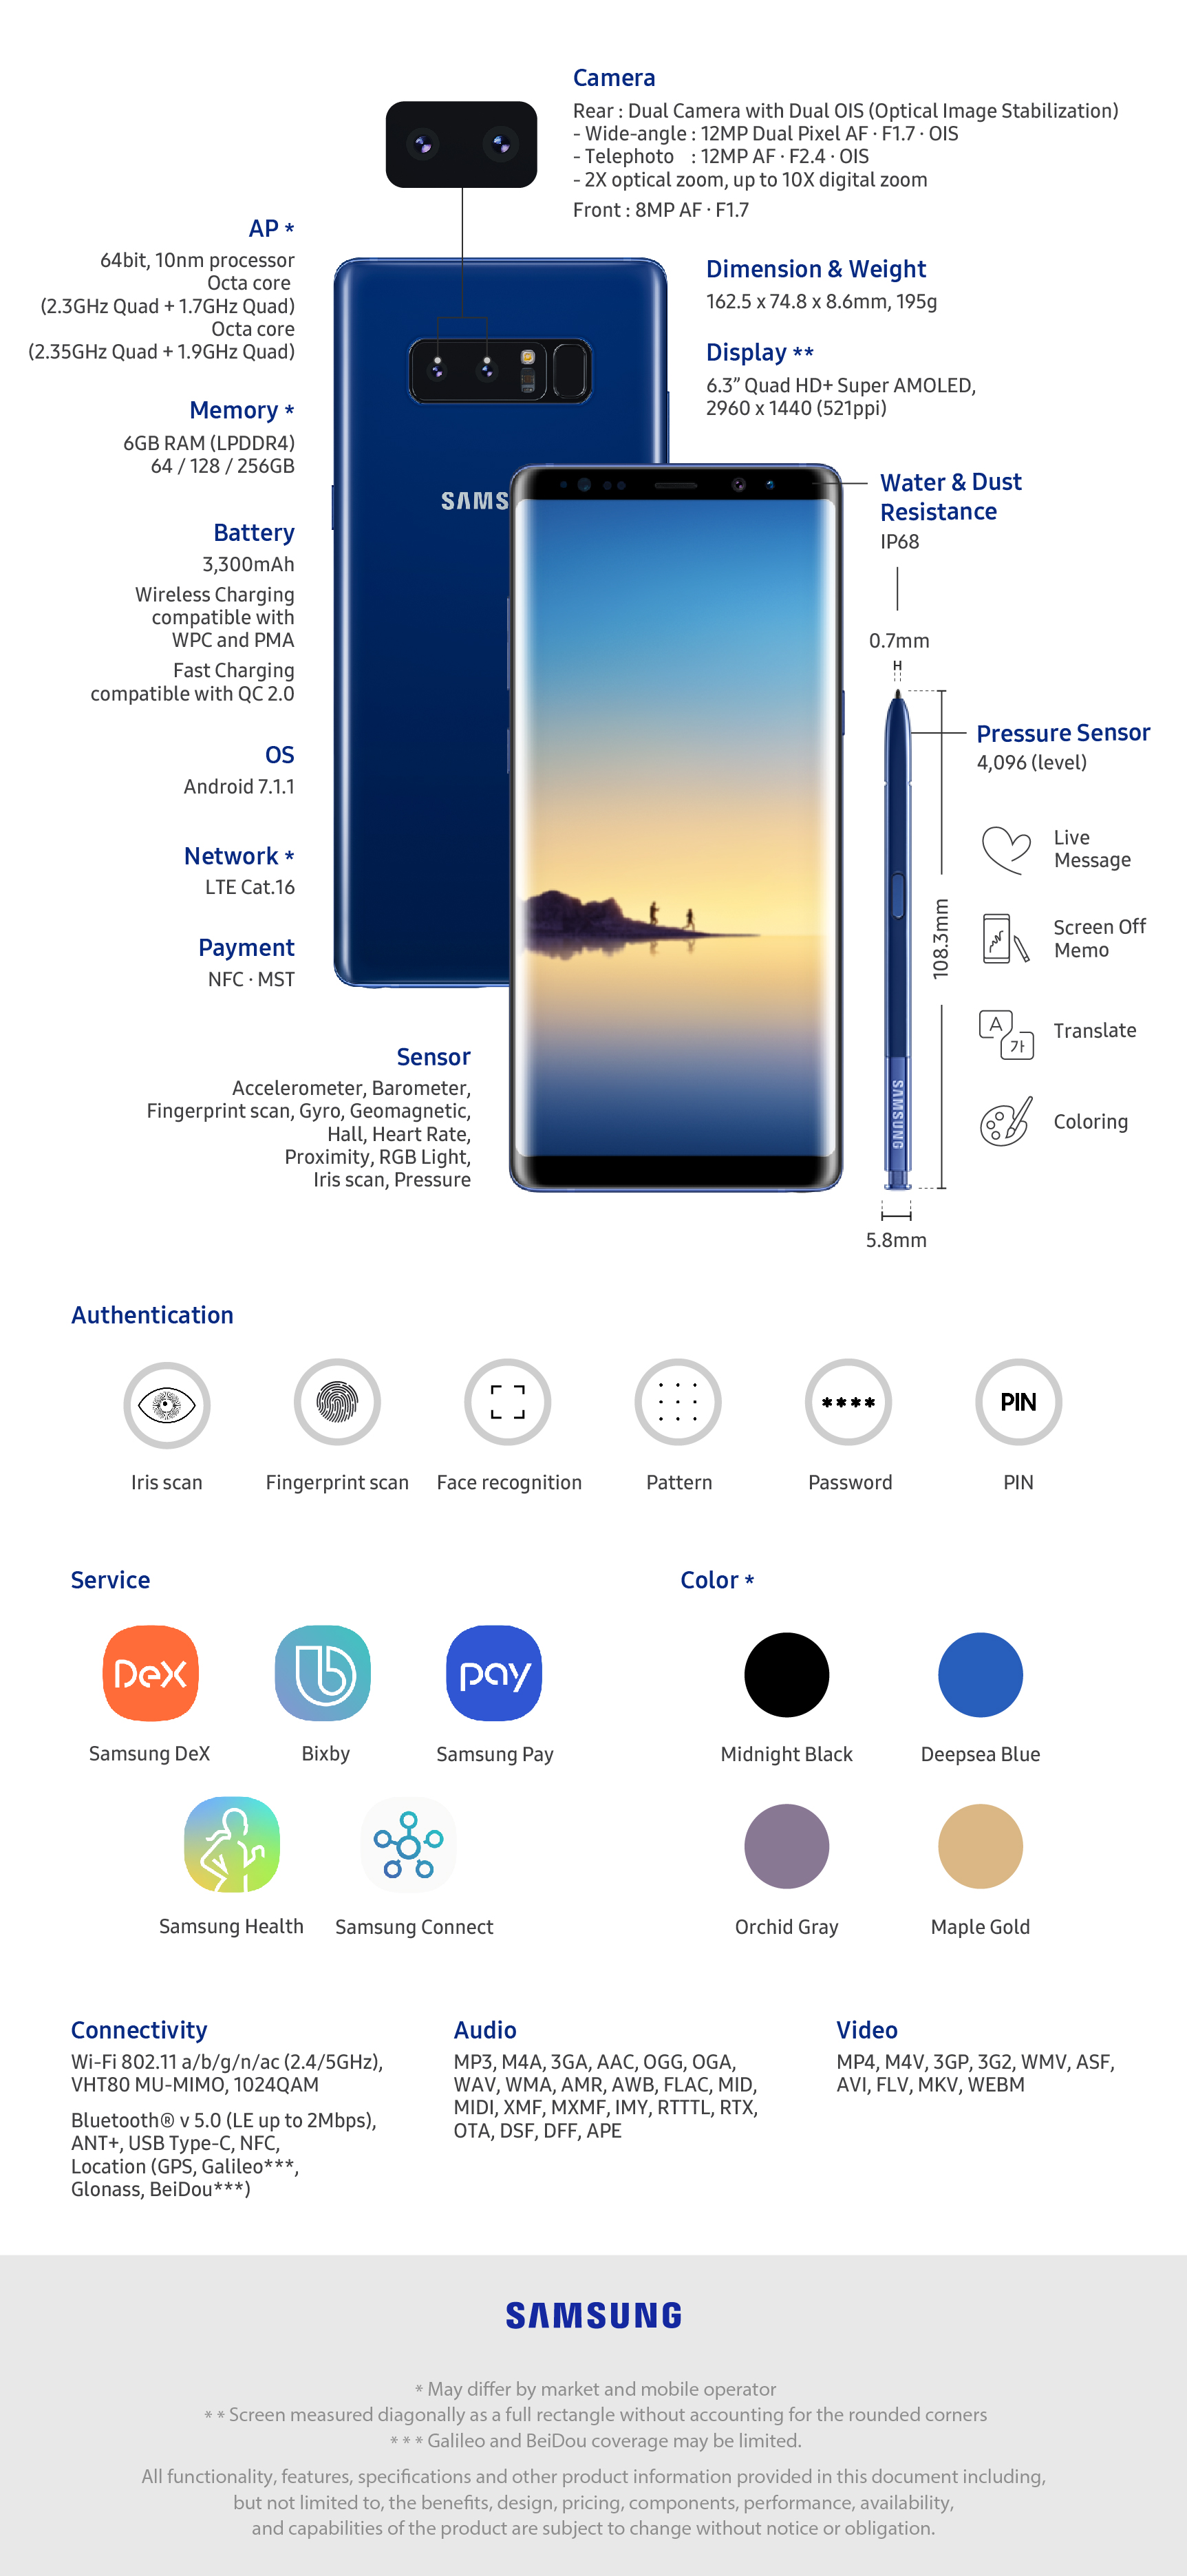 Infographic] The Features and Functions of the Galaxy Note8